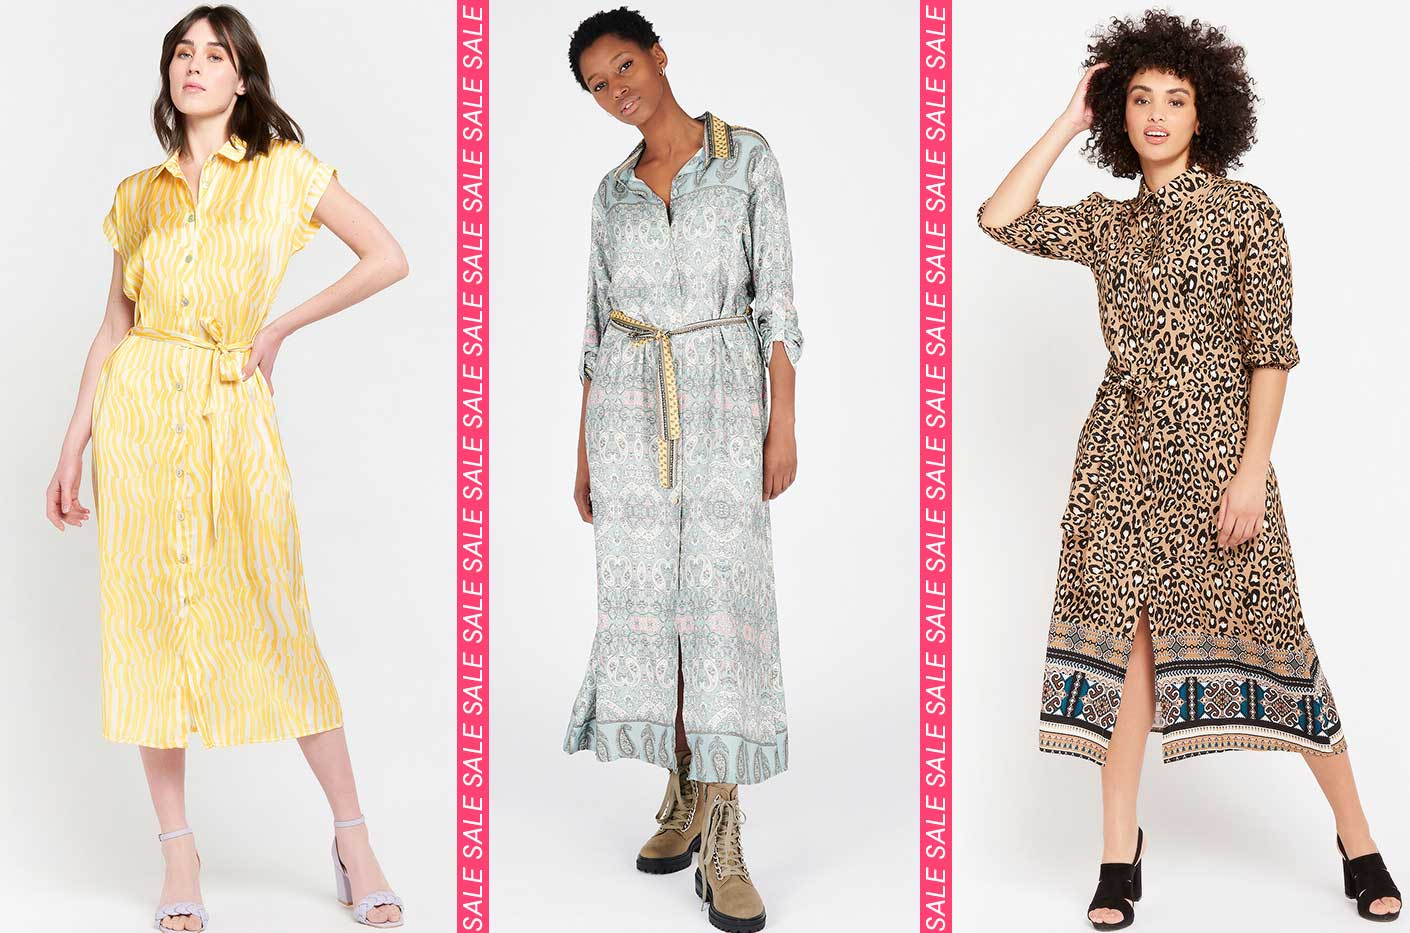 shirt dress with animal print in yellow. Maxi-shirt dress with fine print in almond green color. Leopard print shirt dress in caramel coffee color